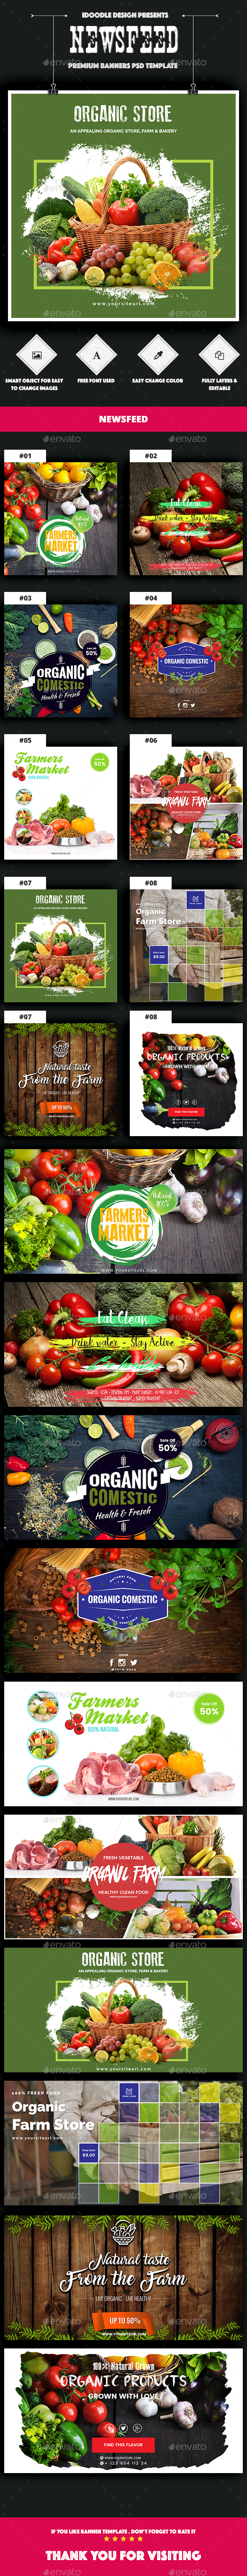 Organic Store, Farm Market, Fresh Food NewsFeed Ads - 20 PSD [02 Size Each] - Banners & Ads Web Elements